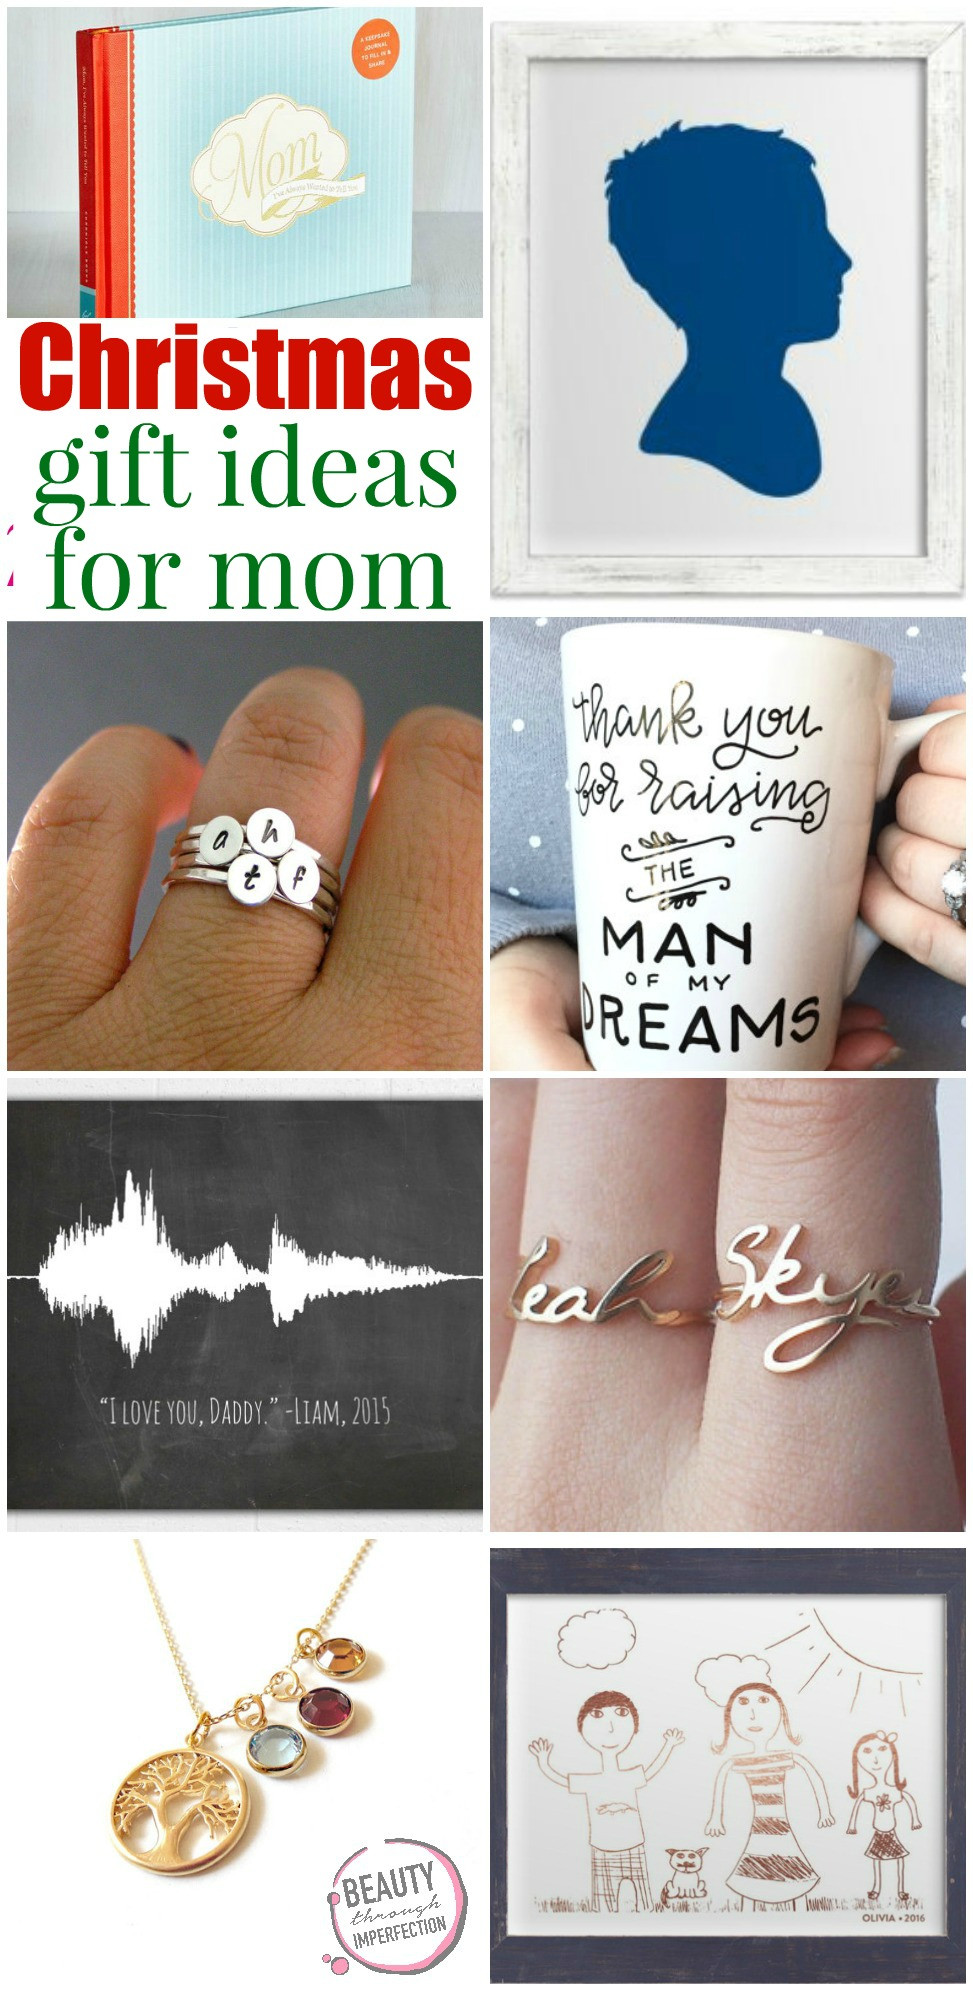 Holiday Gift Ideas For Mom  Mom s t guide Beauty Through Imperfection